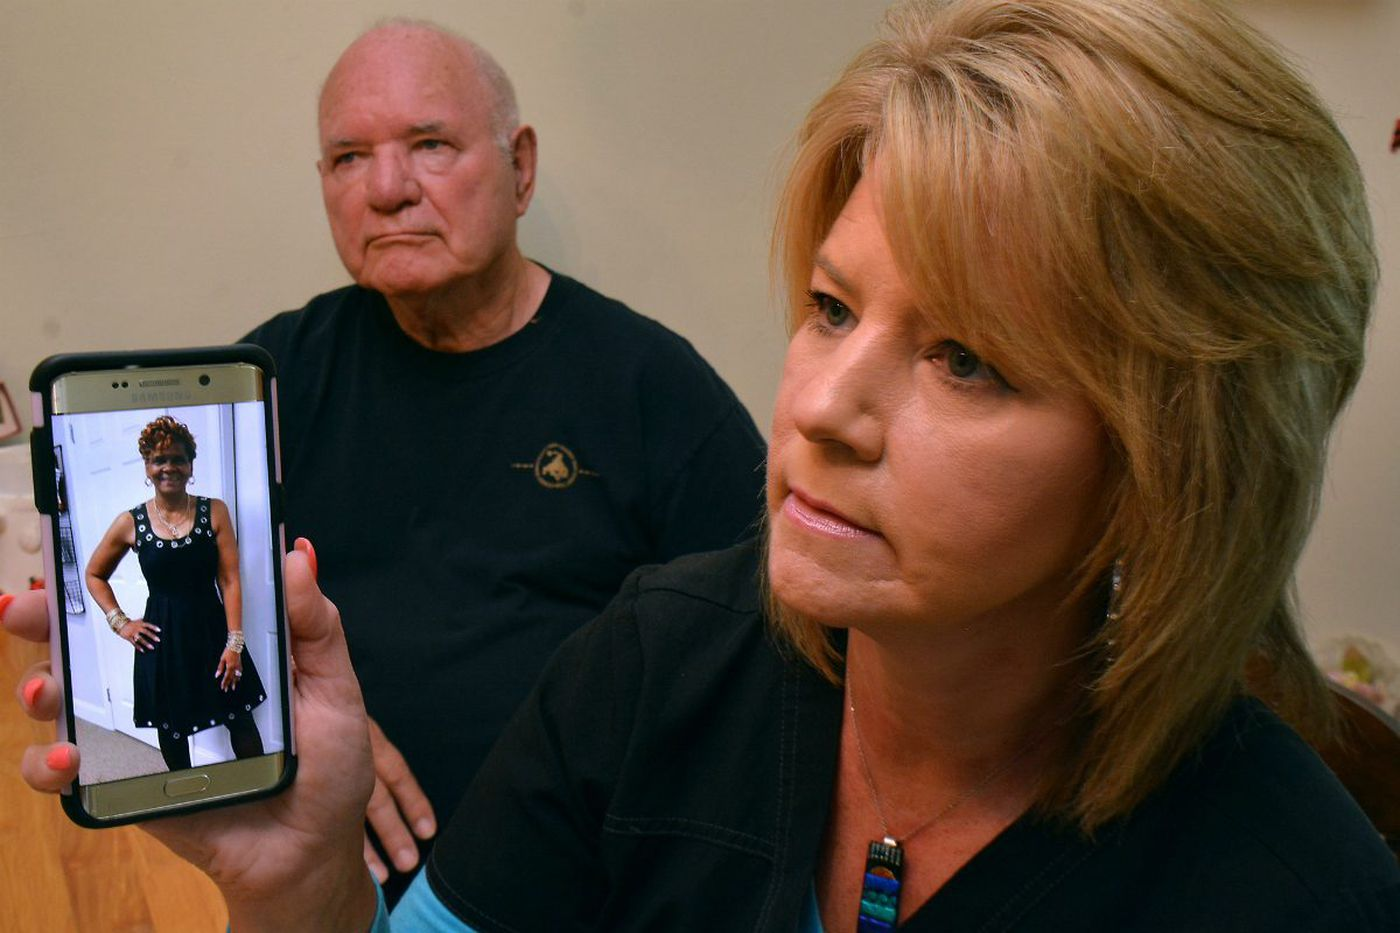 Heidi Austin, with her father, Josef Wituschek, displayed a photo of Gloria Byars from Byars' Facebook page during a 2017 interview with The Inquirer.